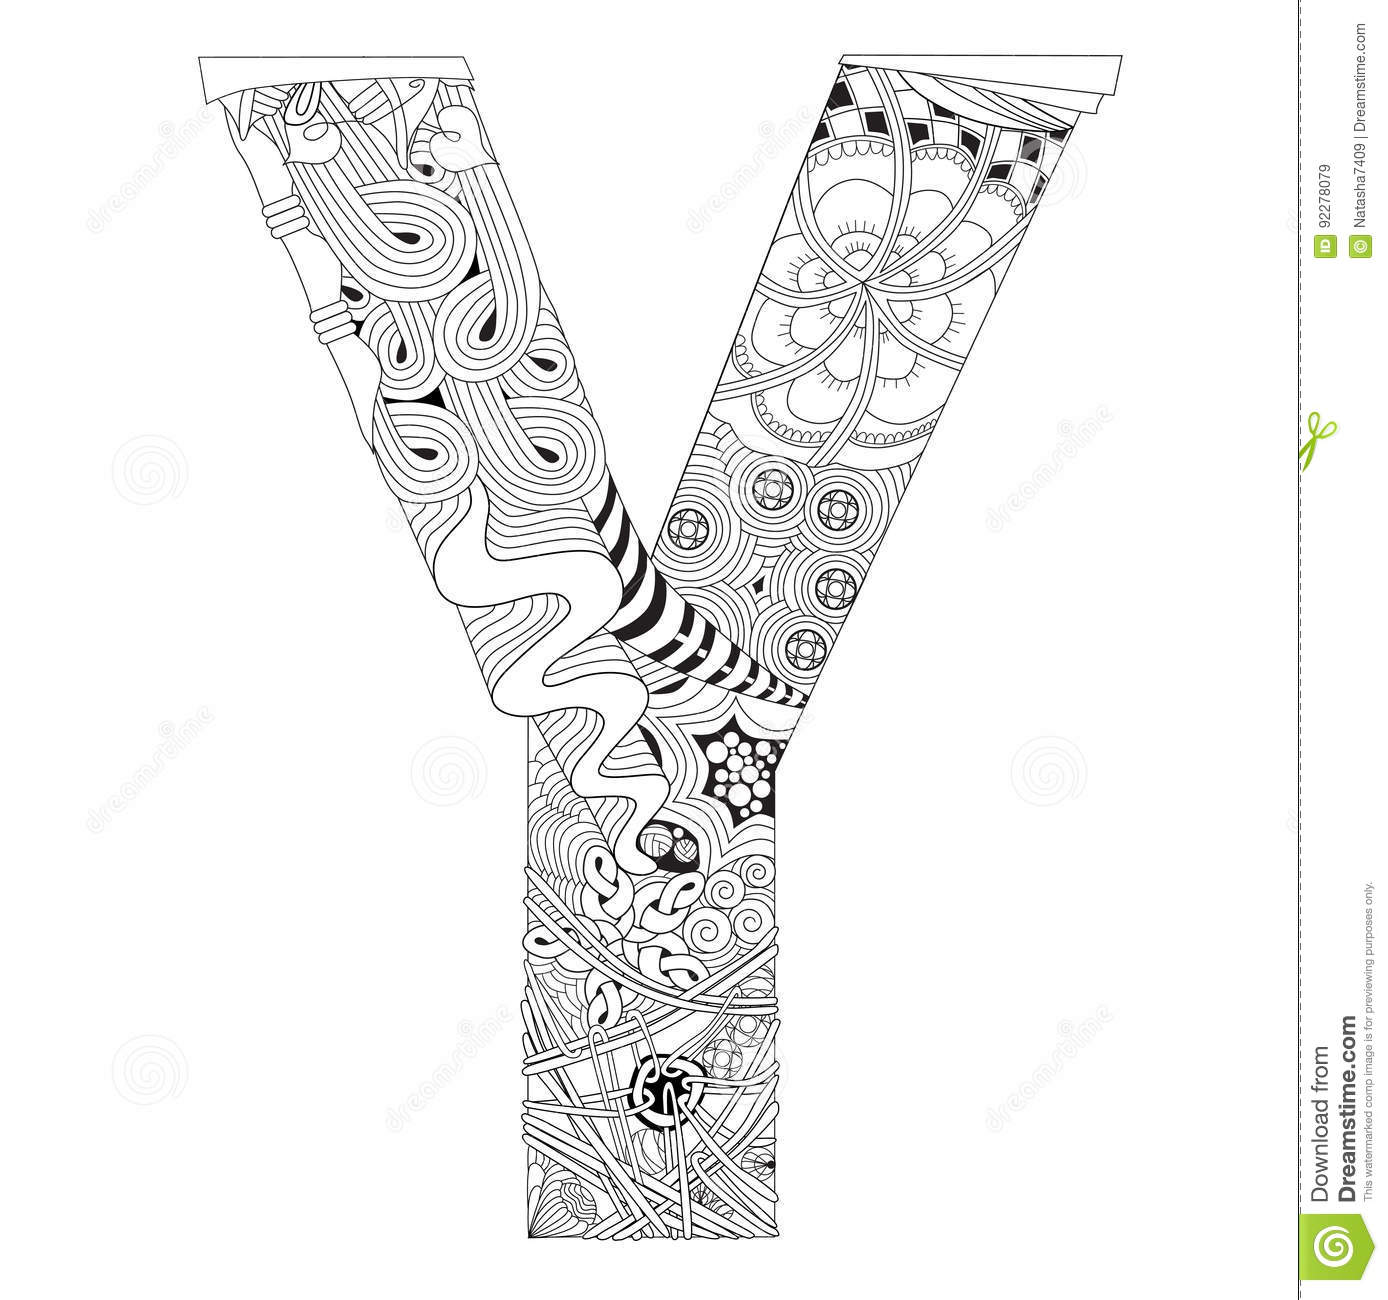 Letter Y Coloring Pages: Letter Y For Coloring. Vector Decorative Zentangle Object